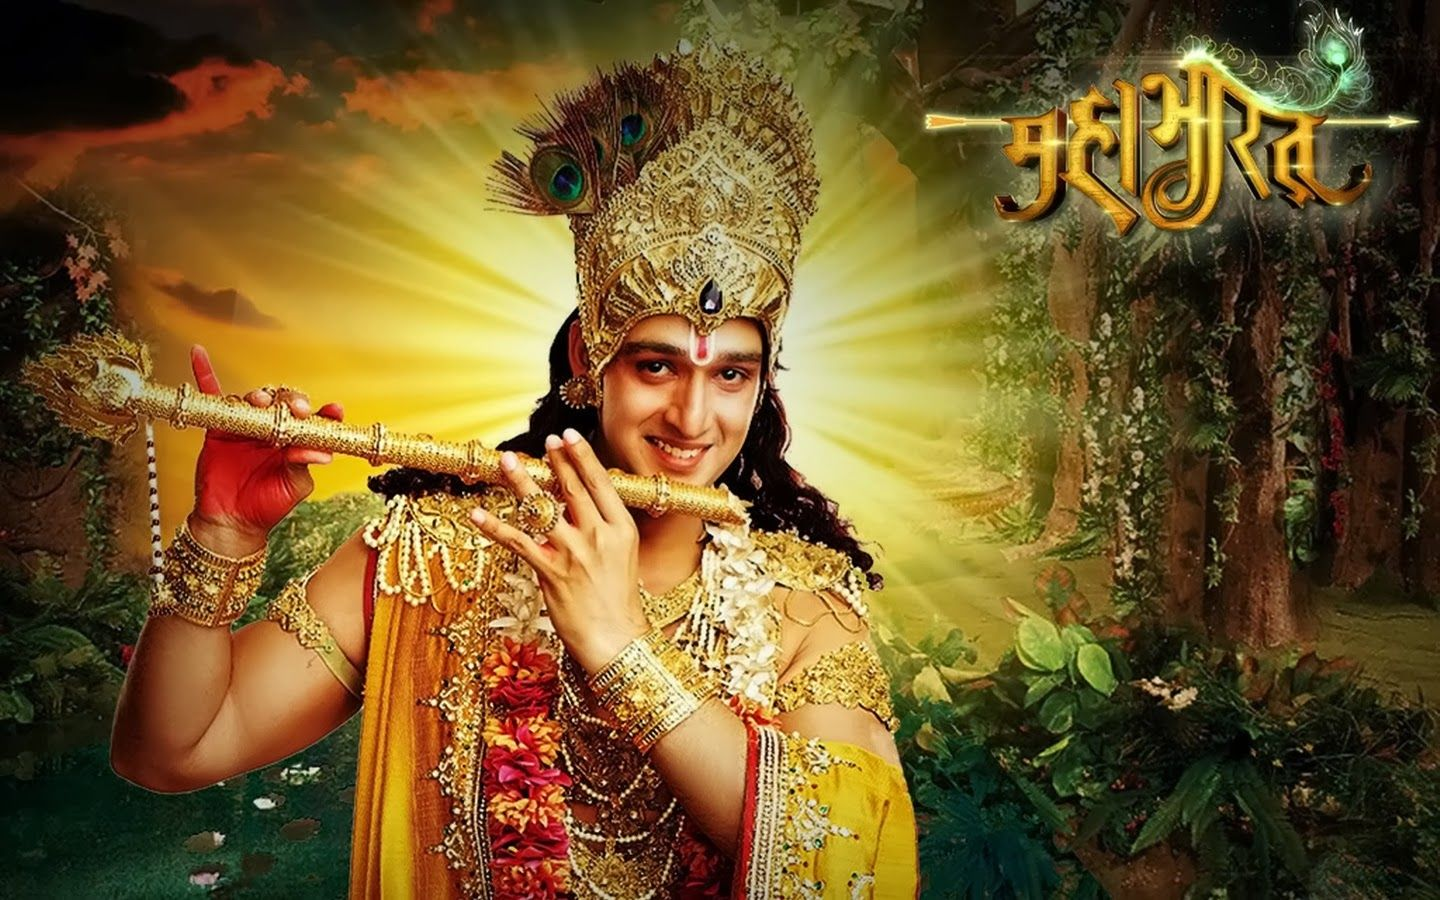 Krishna Wallpaper Tv Serial Hd Size Free Download Krishna Wallpaper Lord Krishna Images Lord Krishna Wallpapers